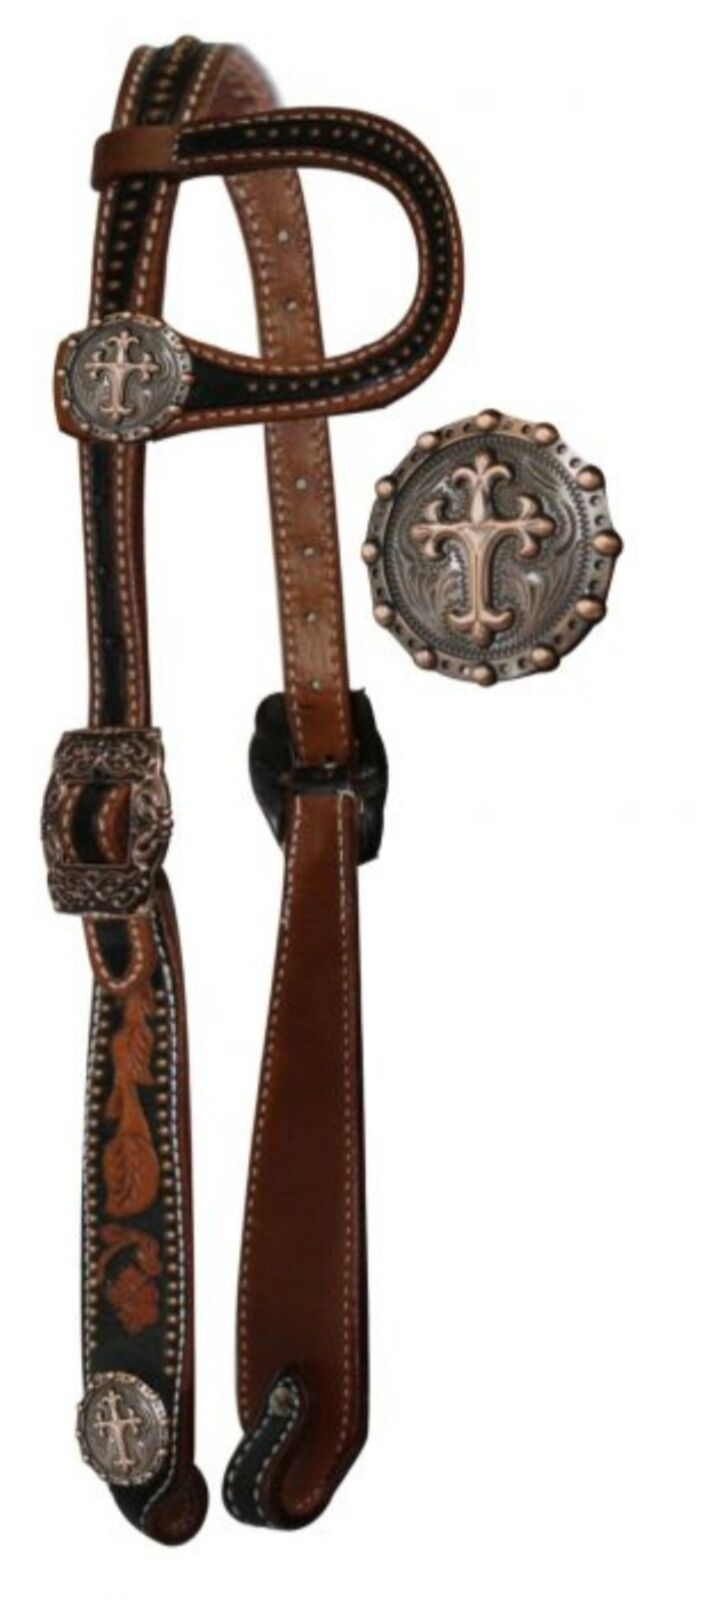 Showman Vintage Style One Ear Horse Headstall with Raised Celtic Cross Conchos